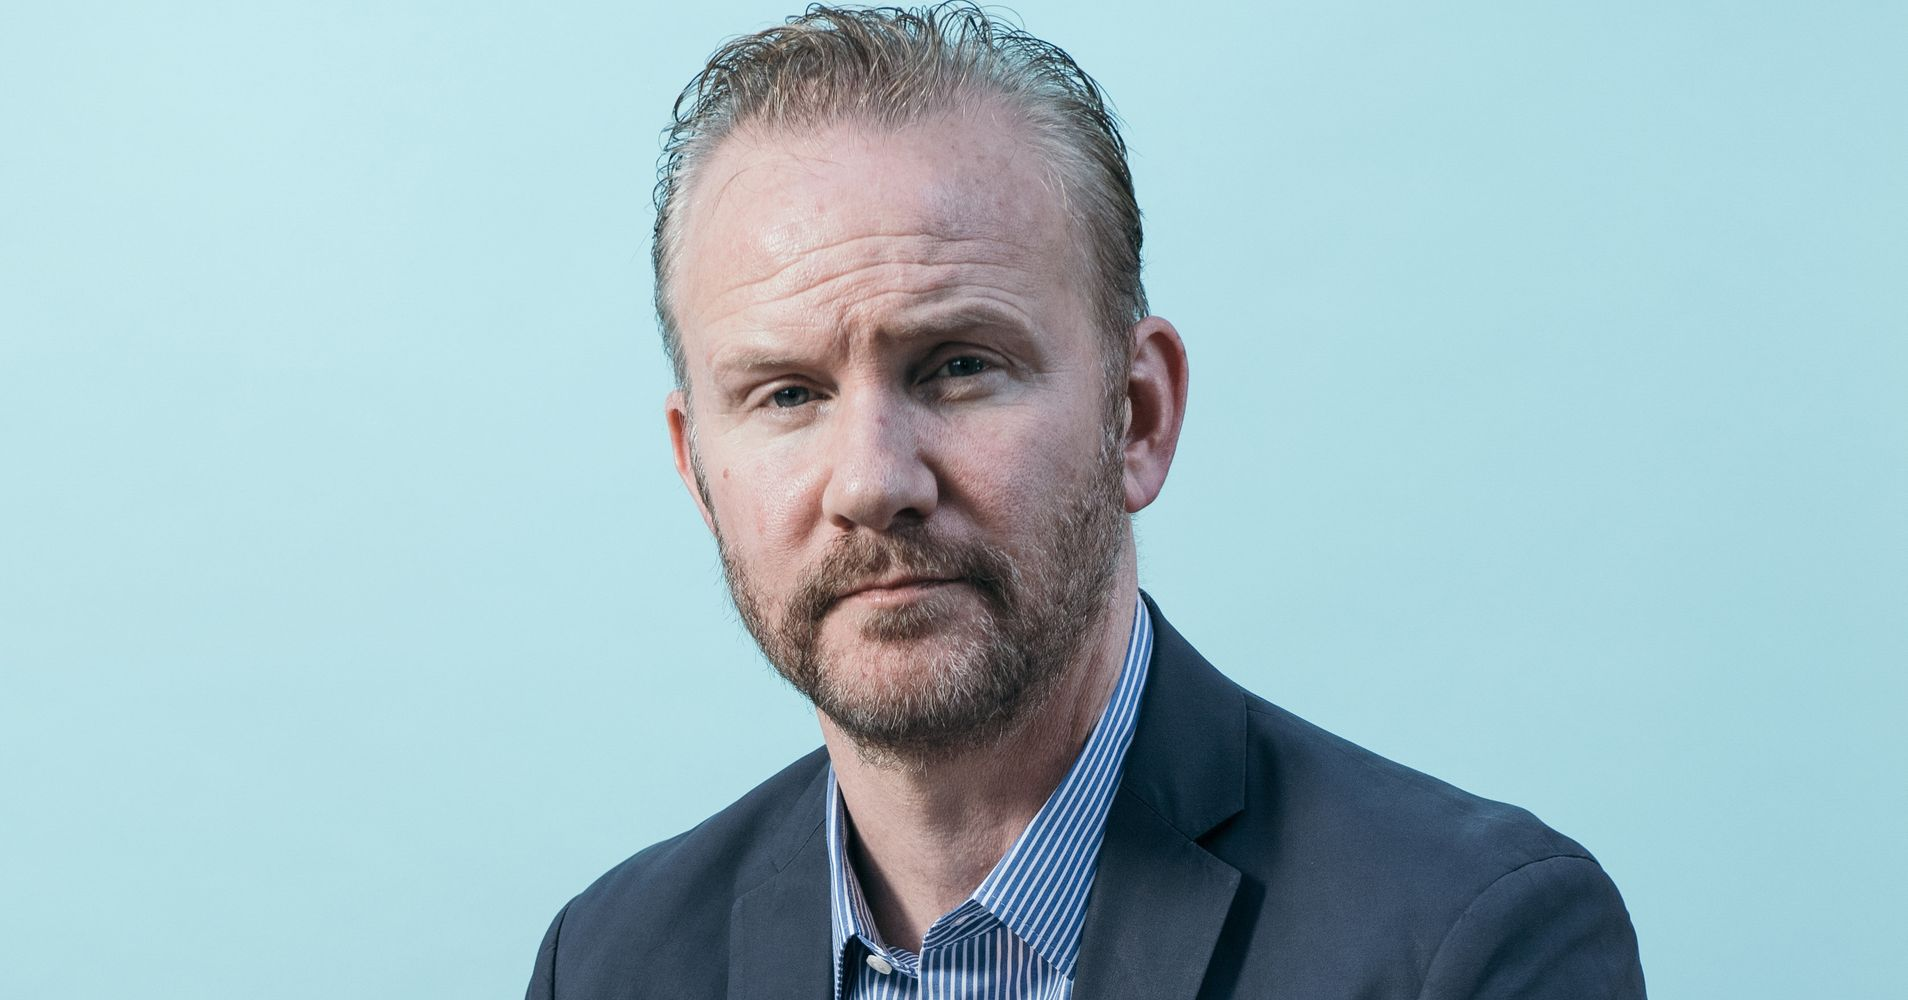 Morgan Spurlock Admits History Of Sexual Misconduct, Including Rape Accusation